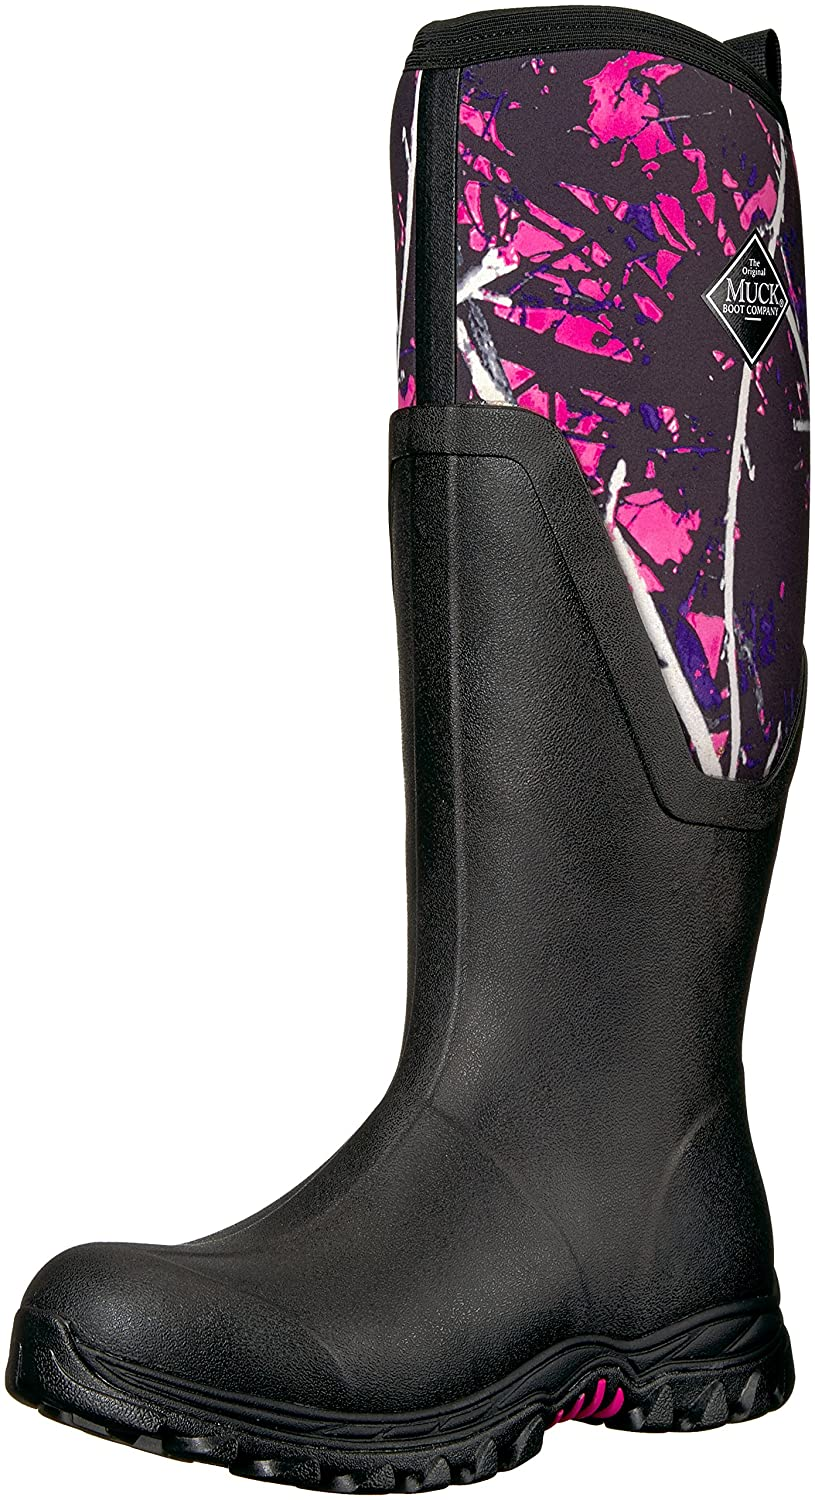 Muck Boot Women's Arctic Sport II Tall Snow B072LXCQQG 10 B(M) US|Black / Muddy Girl